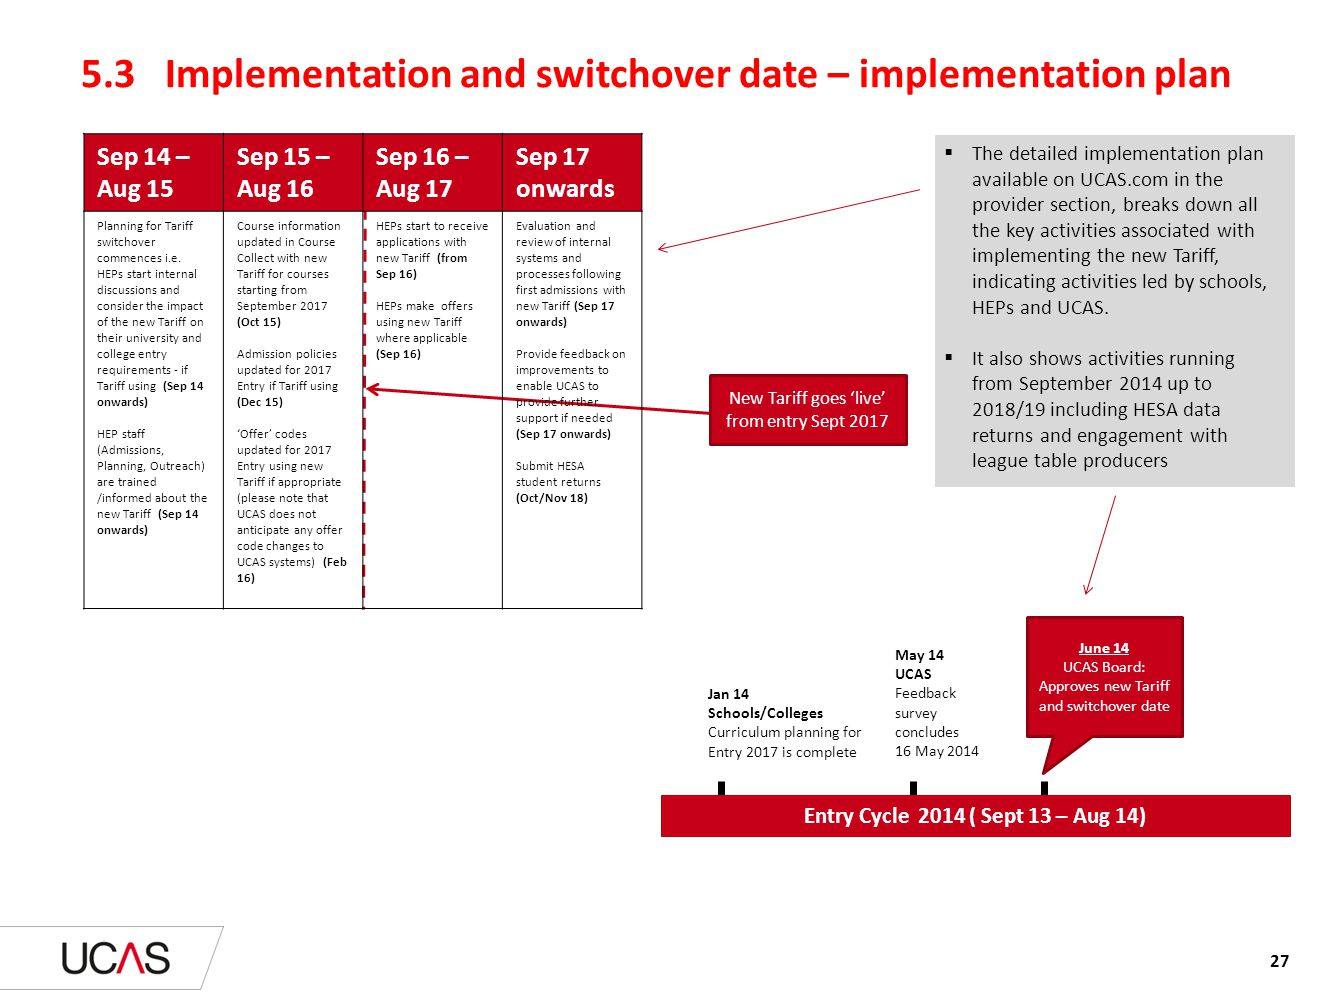 5.3 Implementation and switchover date – implementation plan